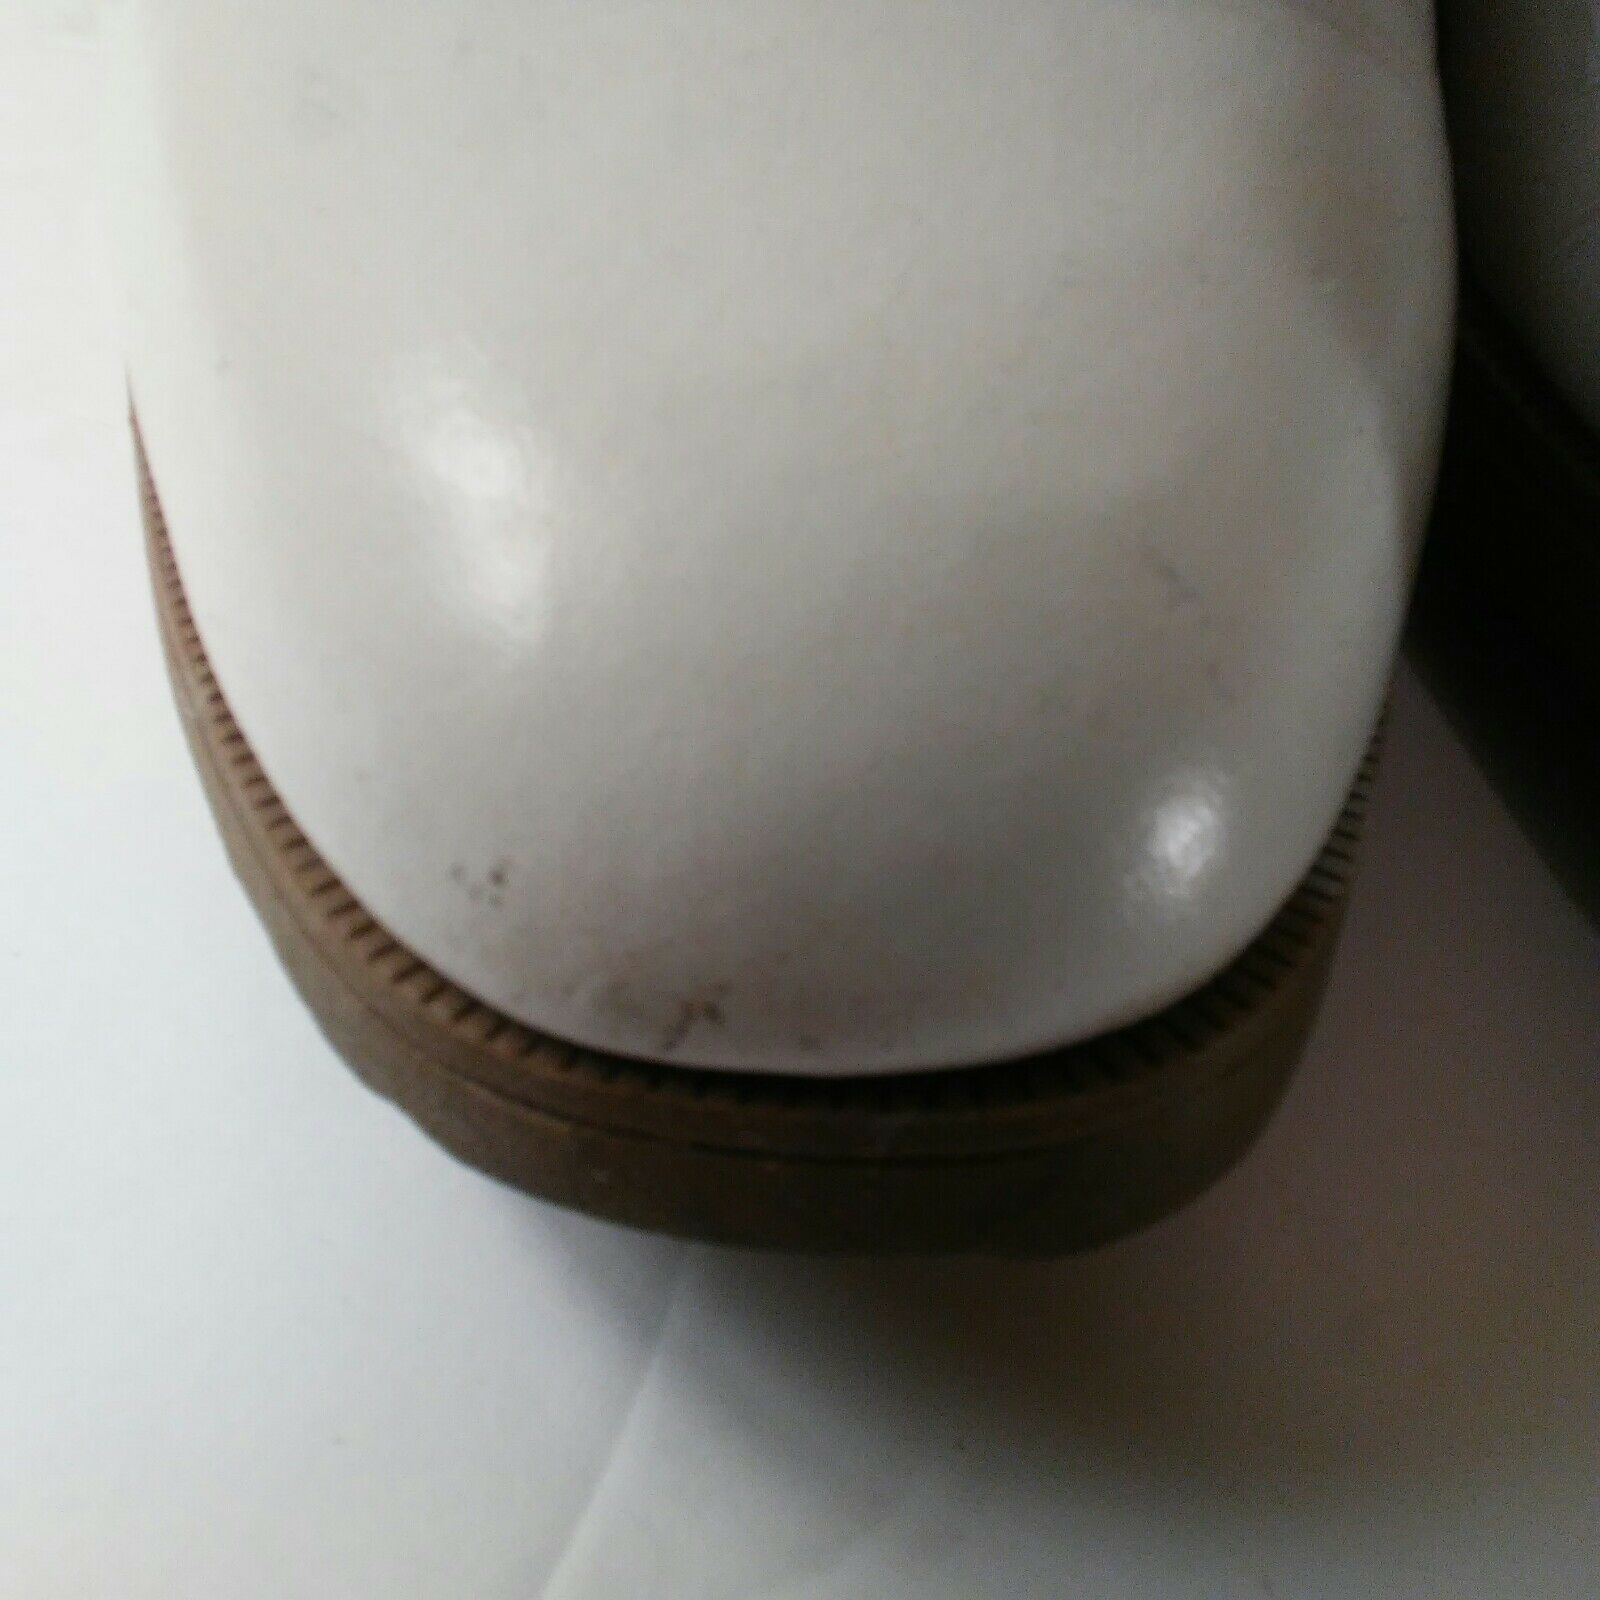 Nike Air Classic Plus White & Brown Saddle Golf Shoes Size 9 image 7